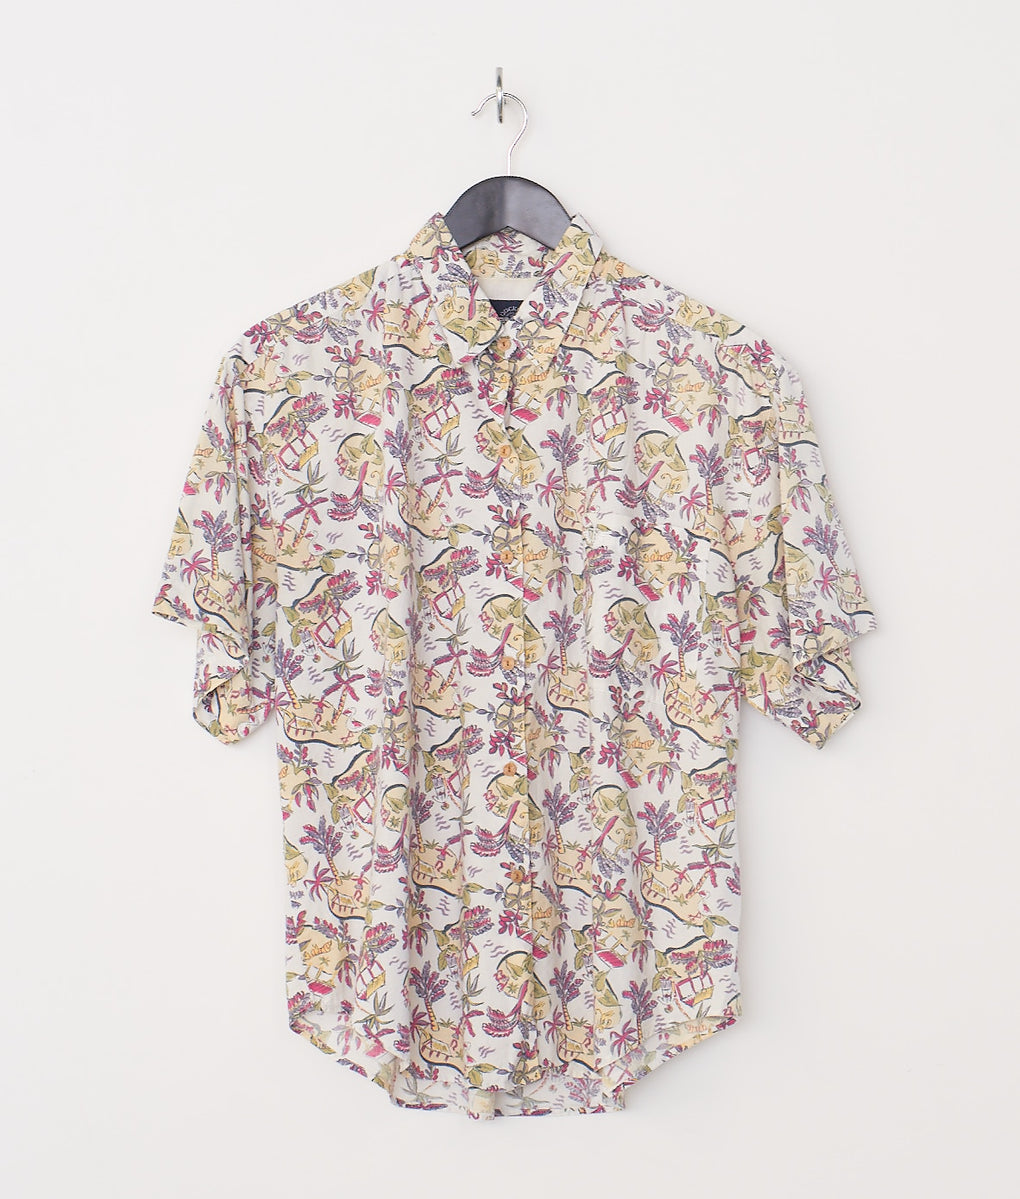 CocoNUTS S/S Shirt (M)